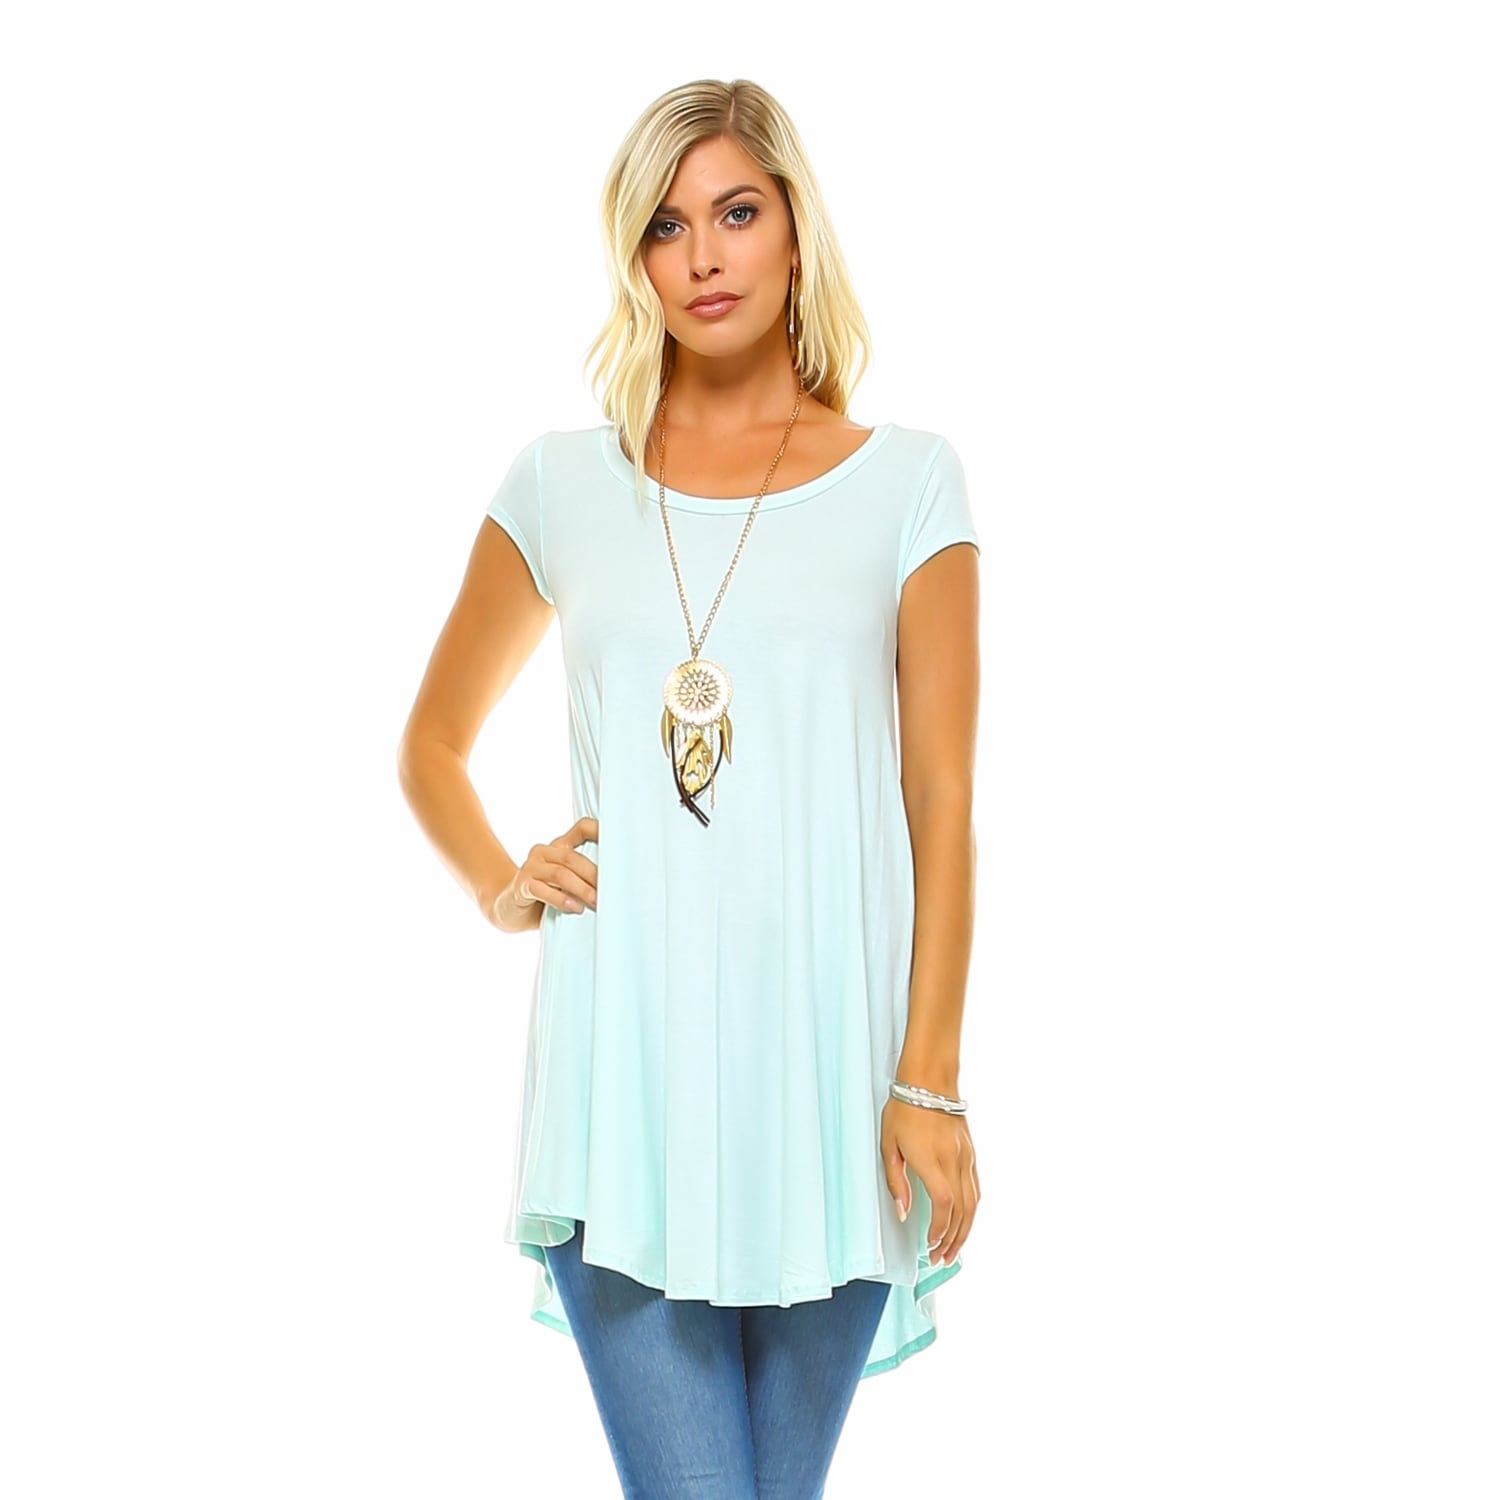 ea16b39141fd Buy 3/4 Sleeve Shirts Online at Overstock | Our Best Tops Deals